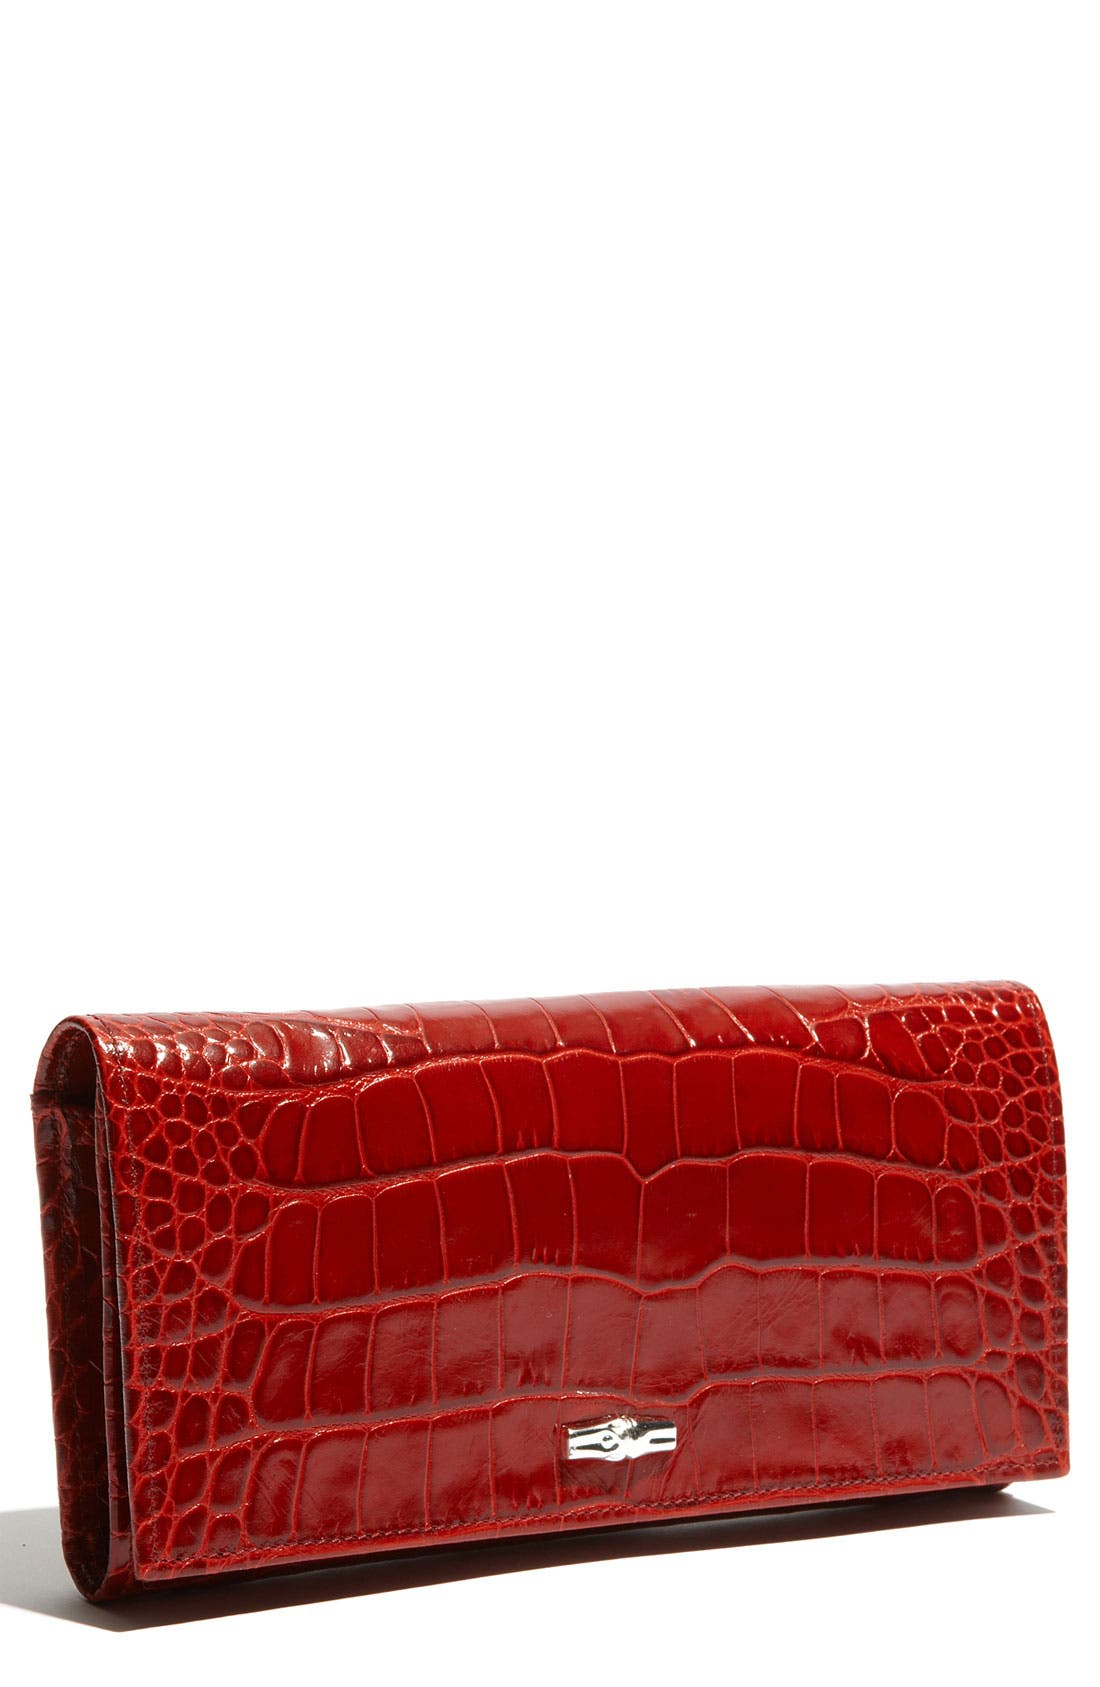 Alternate Image 1 Selected - Longchamp 'Roseau' Croc Embossed Wallet